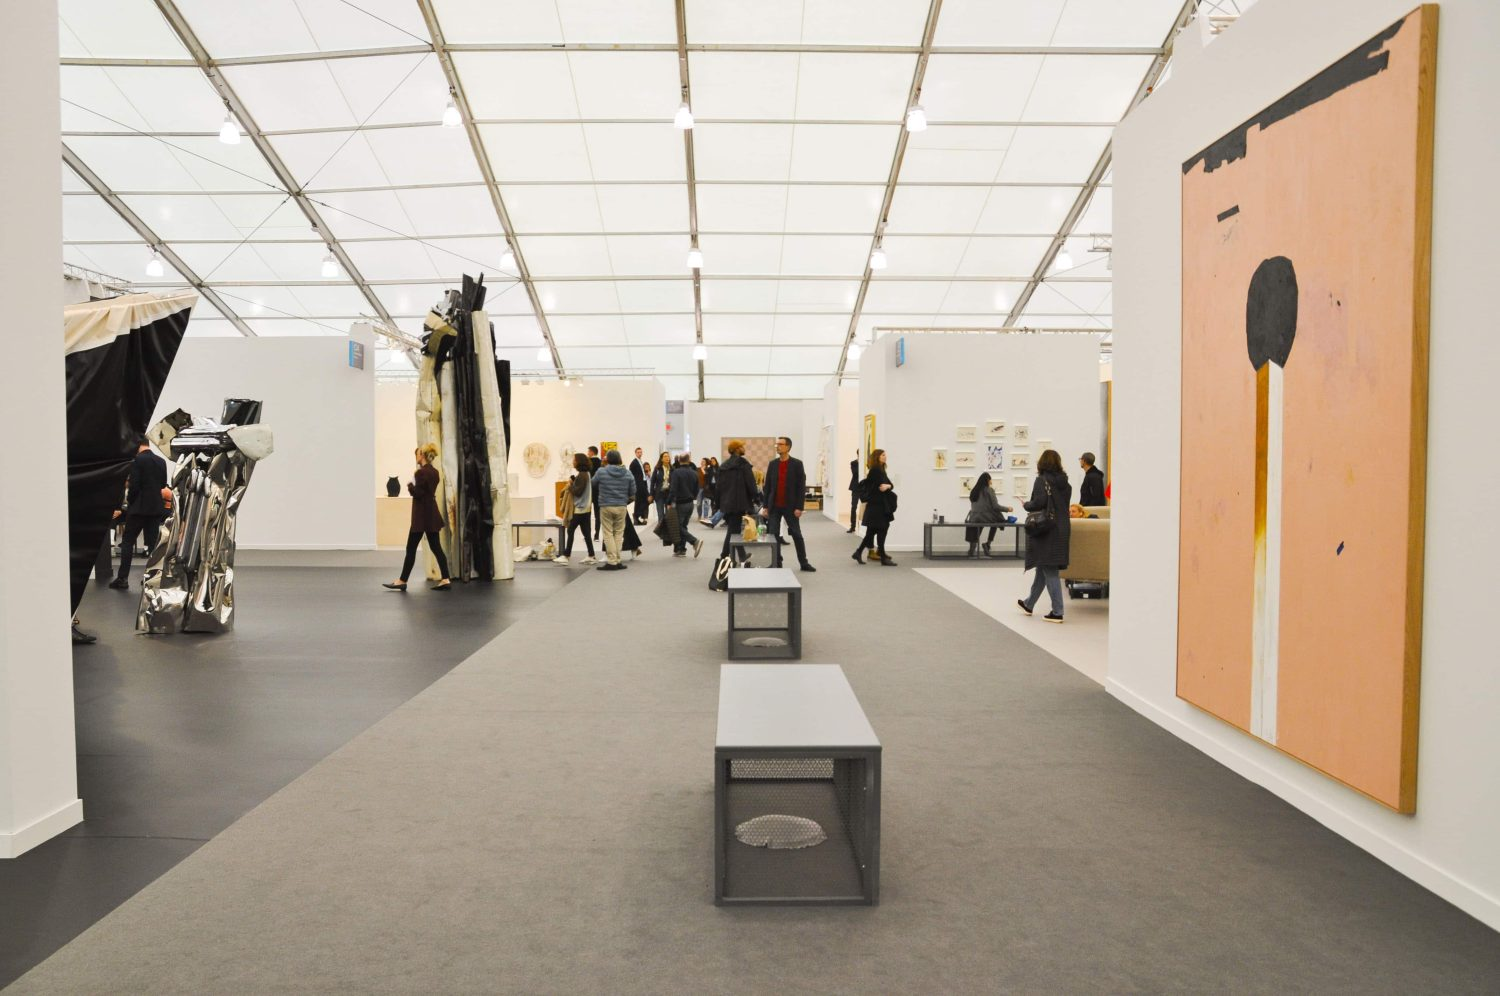 An image of 2019's Frieze Art Fair in NYC.